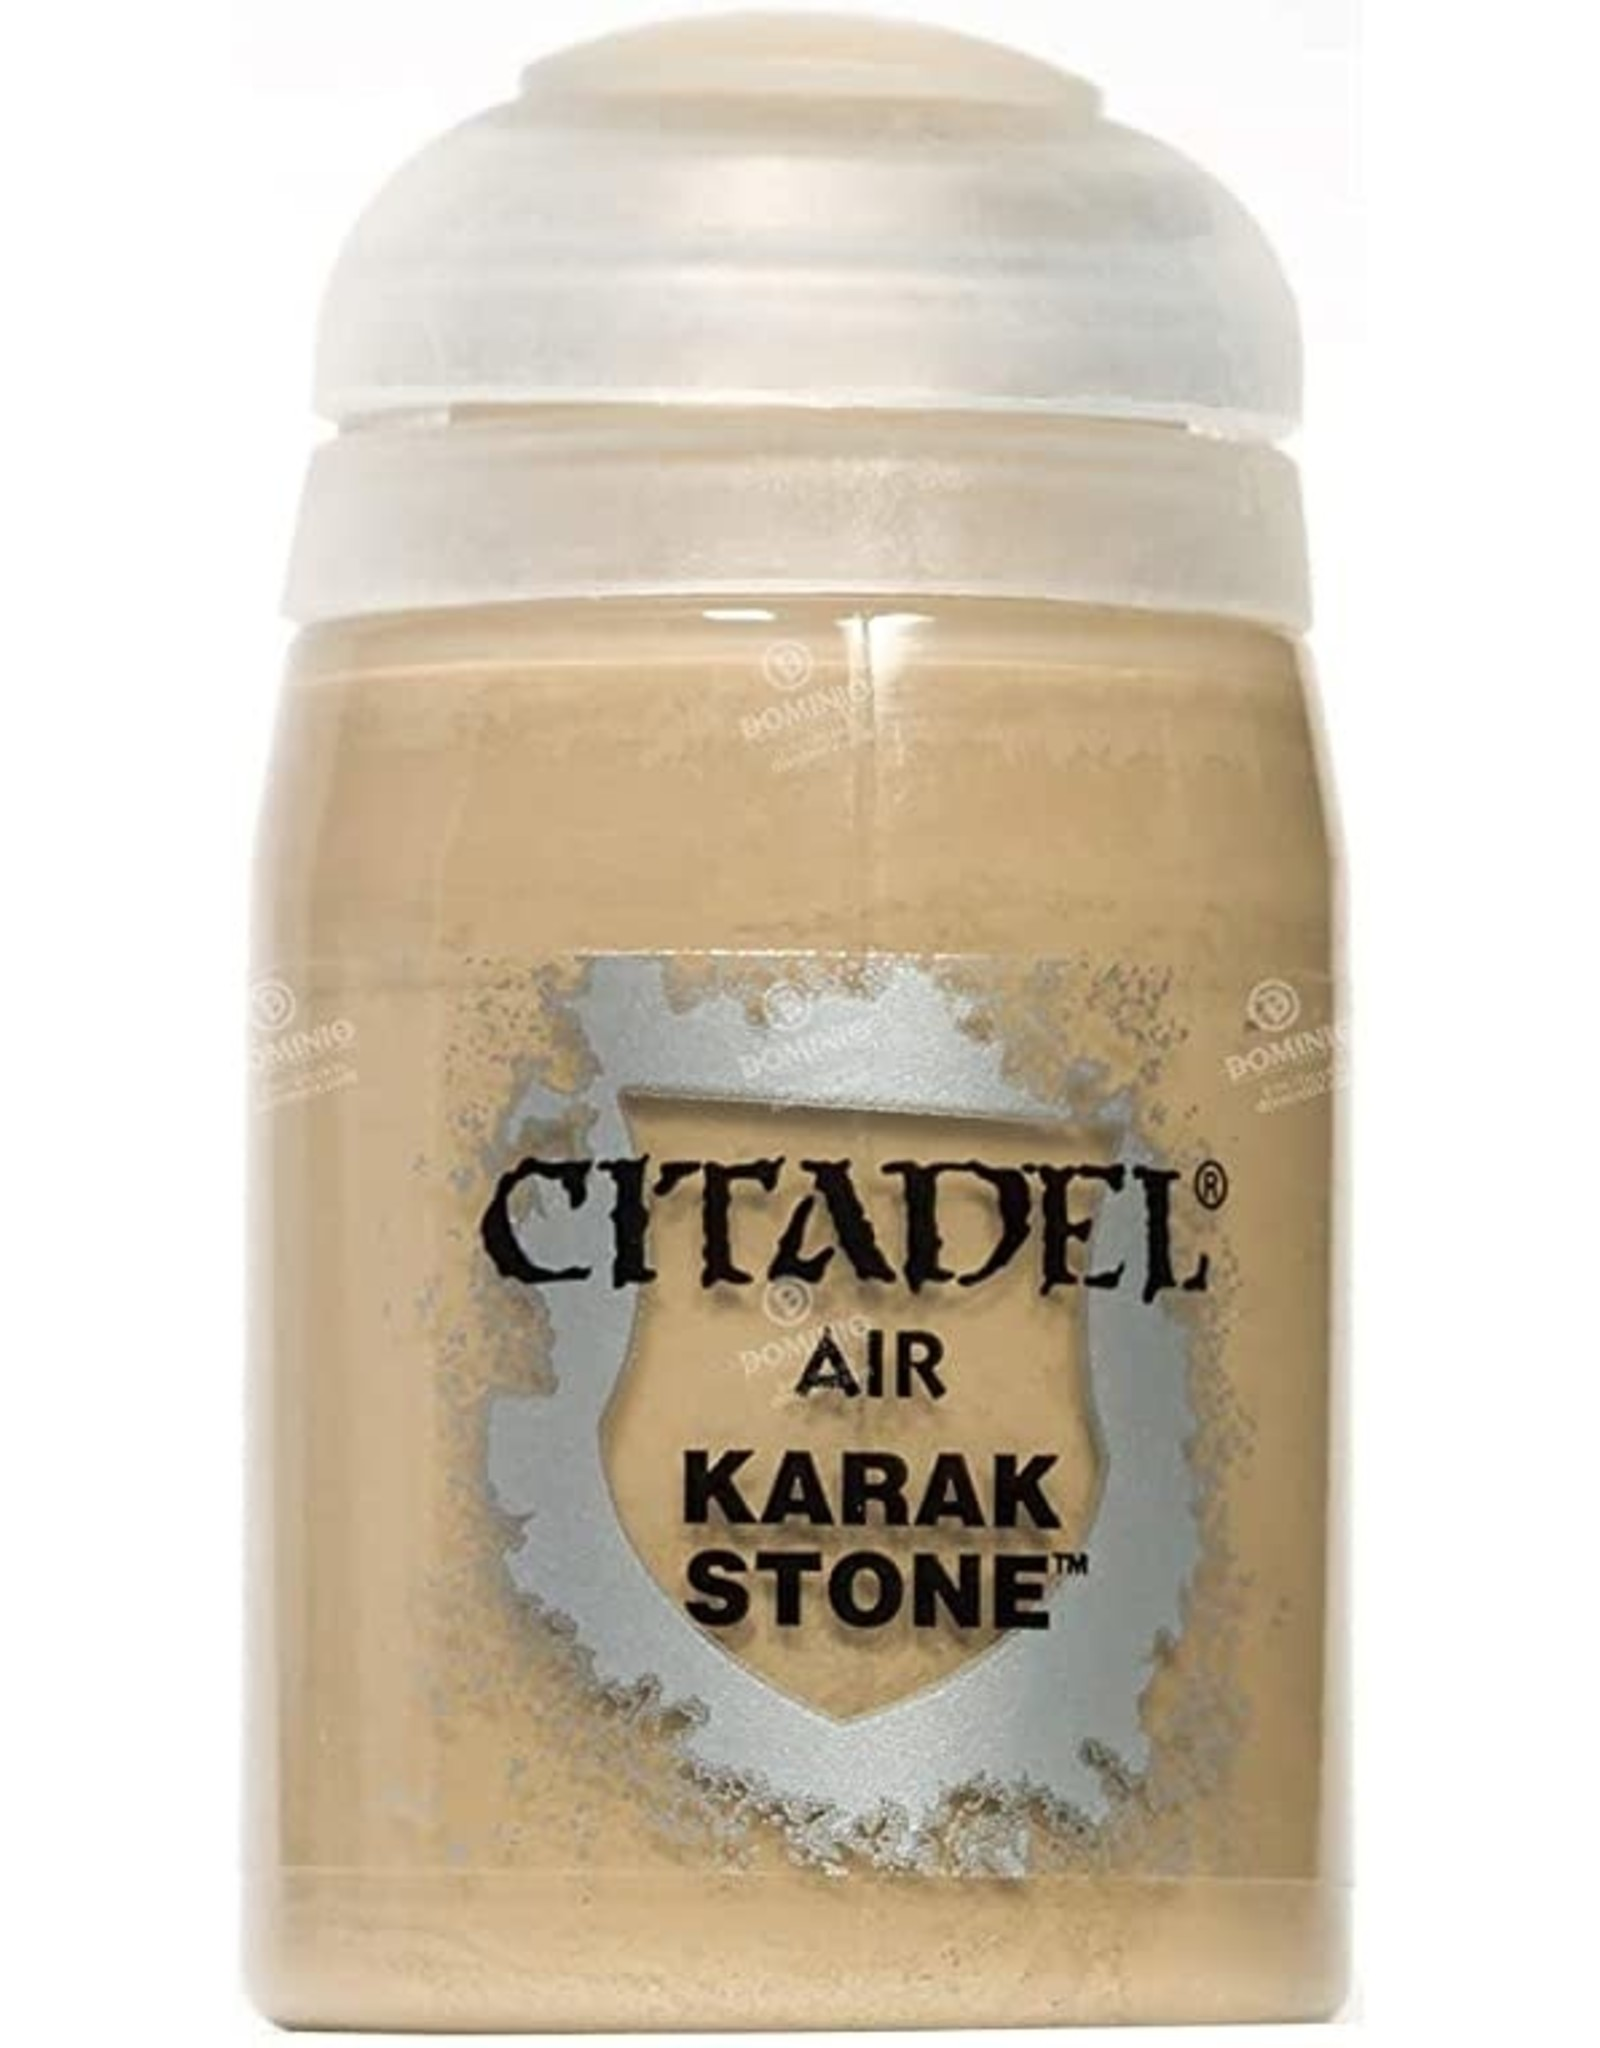 Games Workshop Citadel Paint: Karak Stone Air (24 ml)